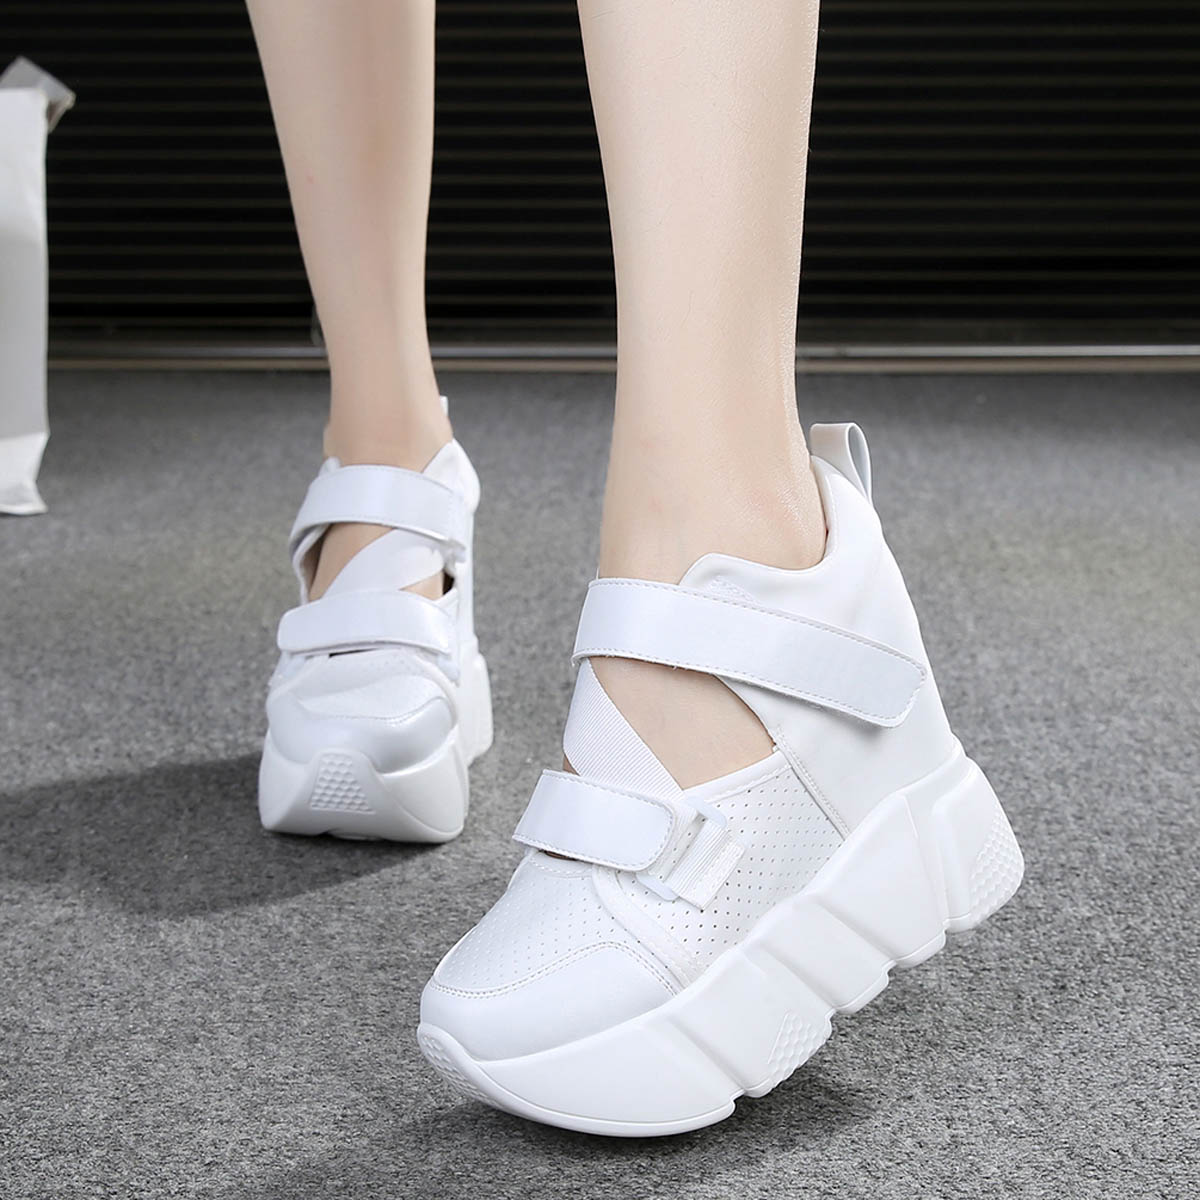 The thickness of bottom women spring 2017 new tennis shoes with sponge spell color ultra breathable shoes high-heeled leisure sports